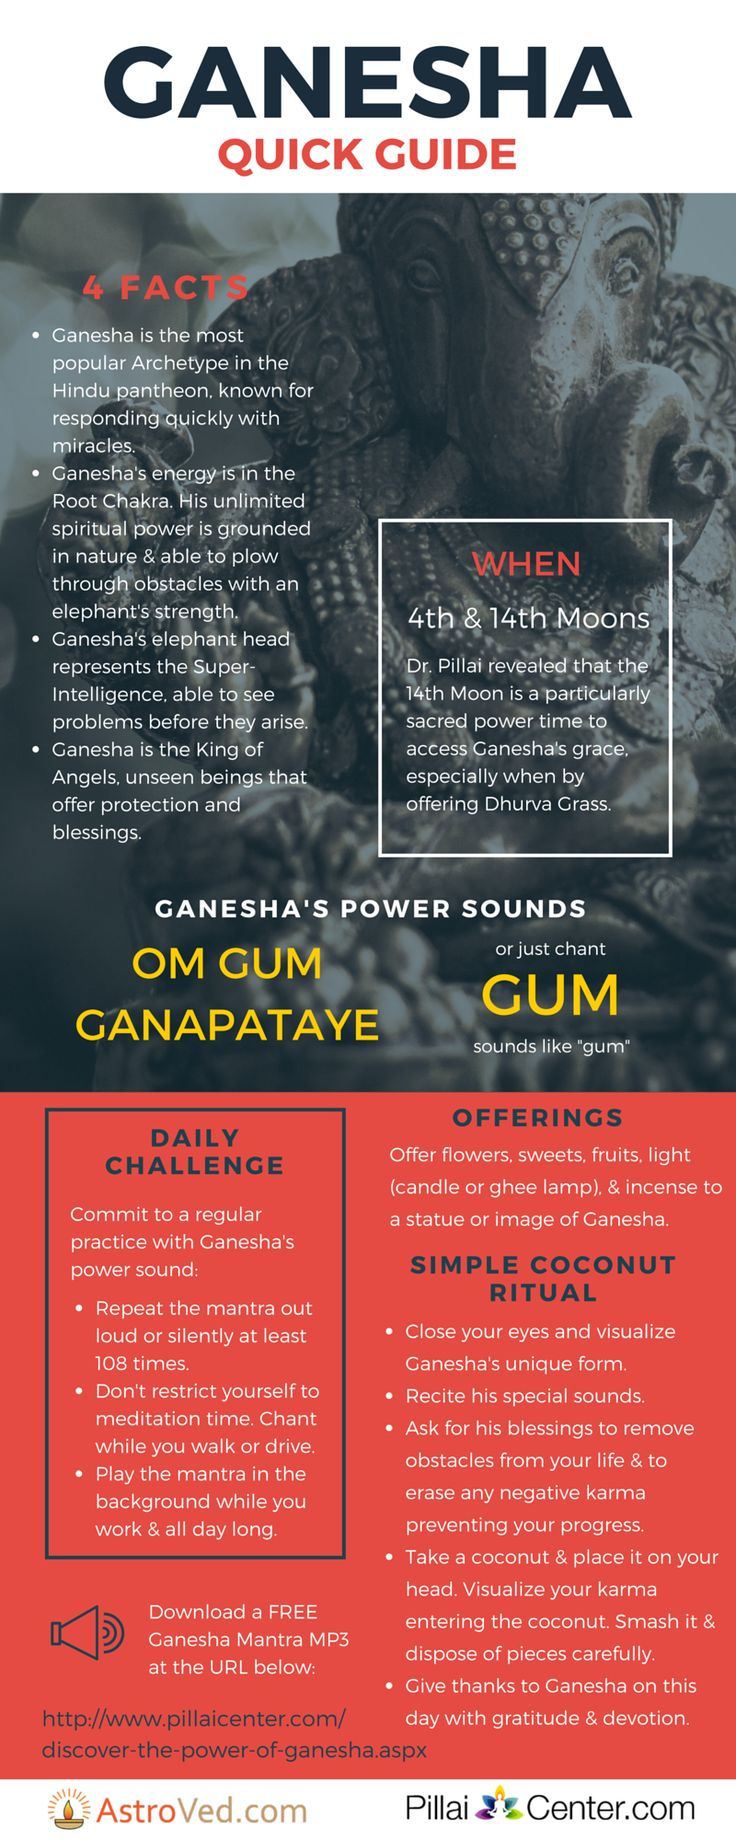 GANESHA Quick Guide